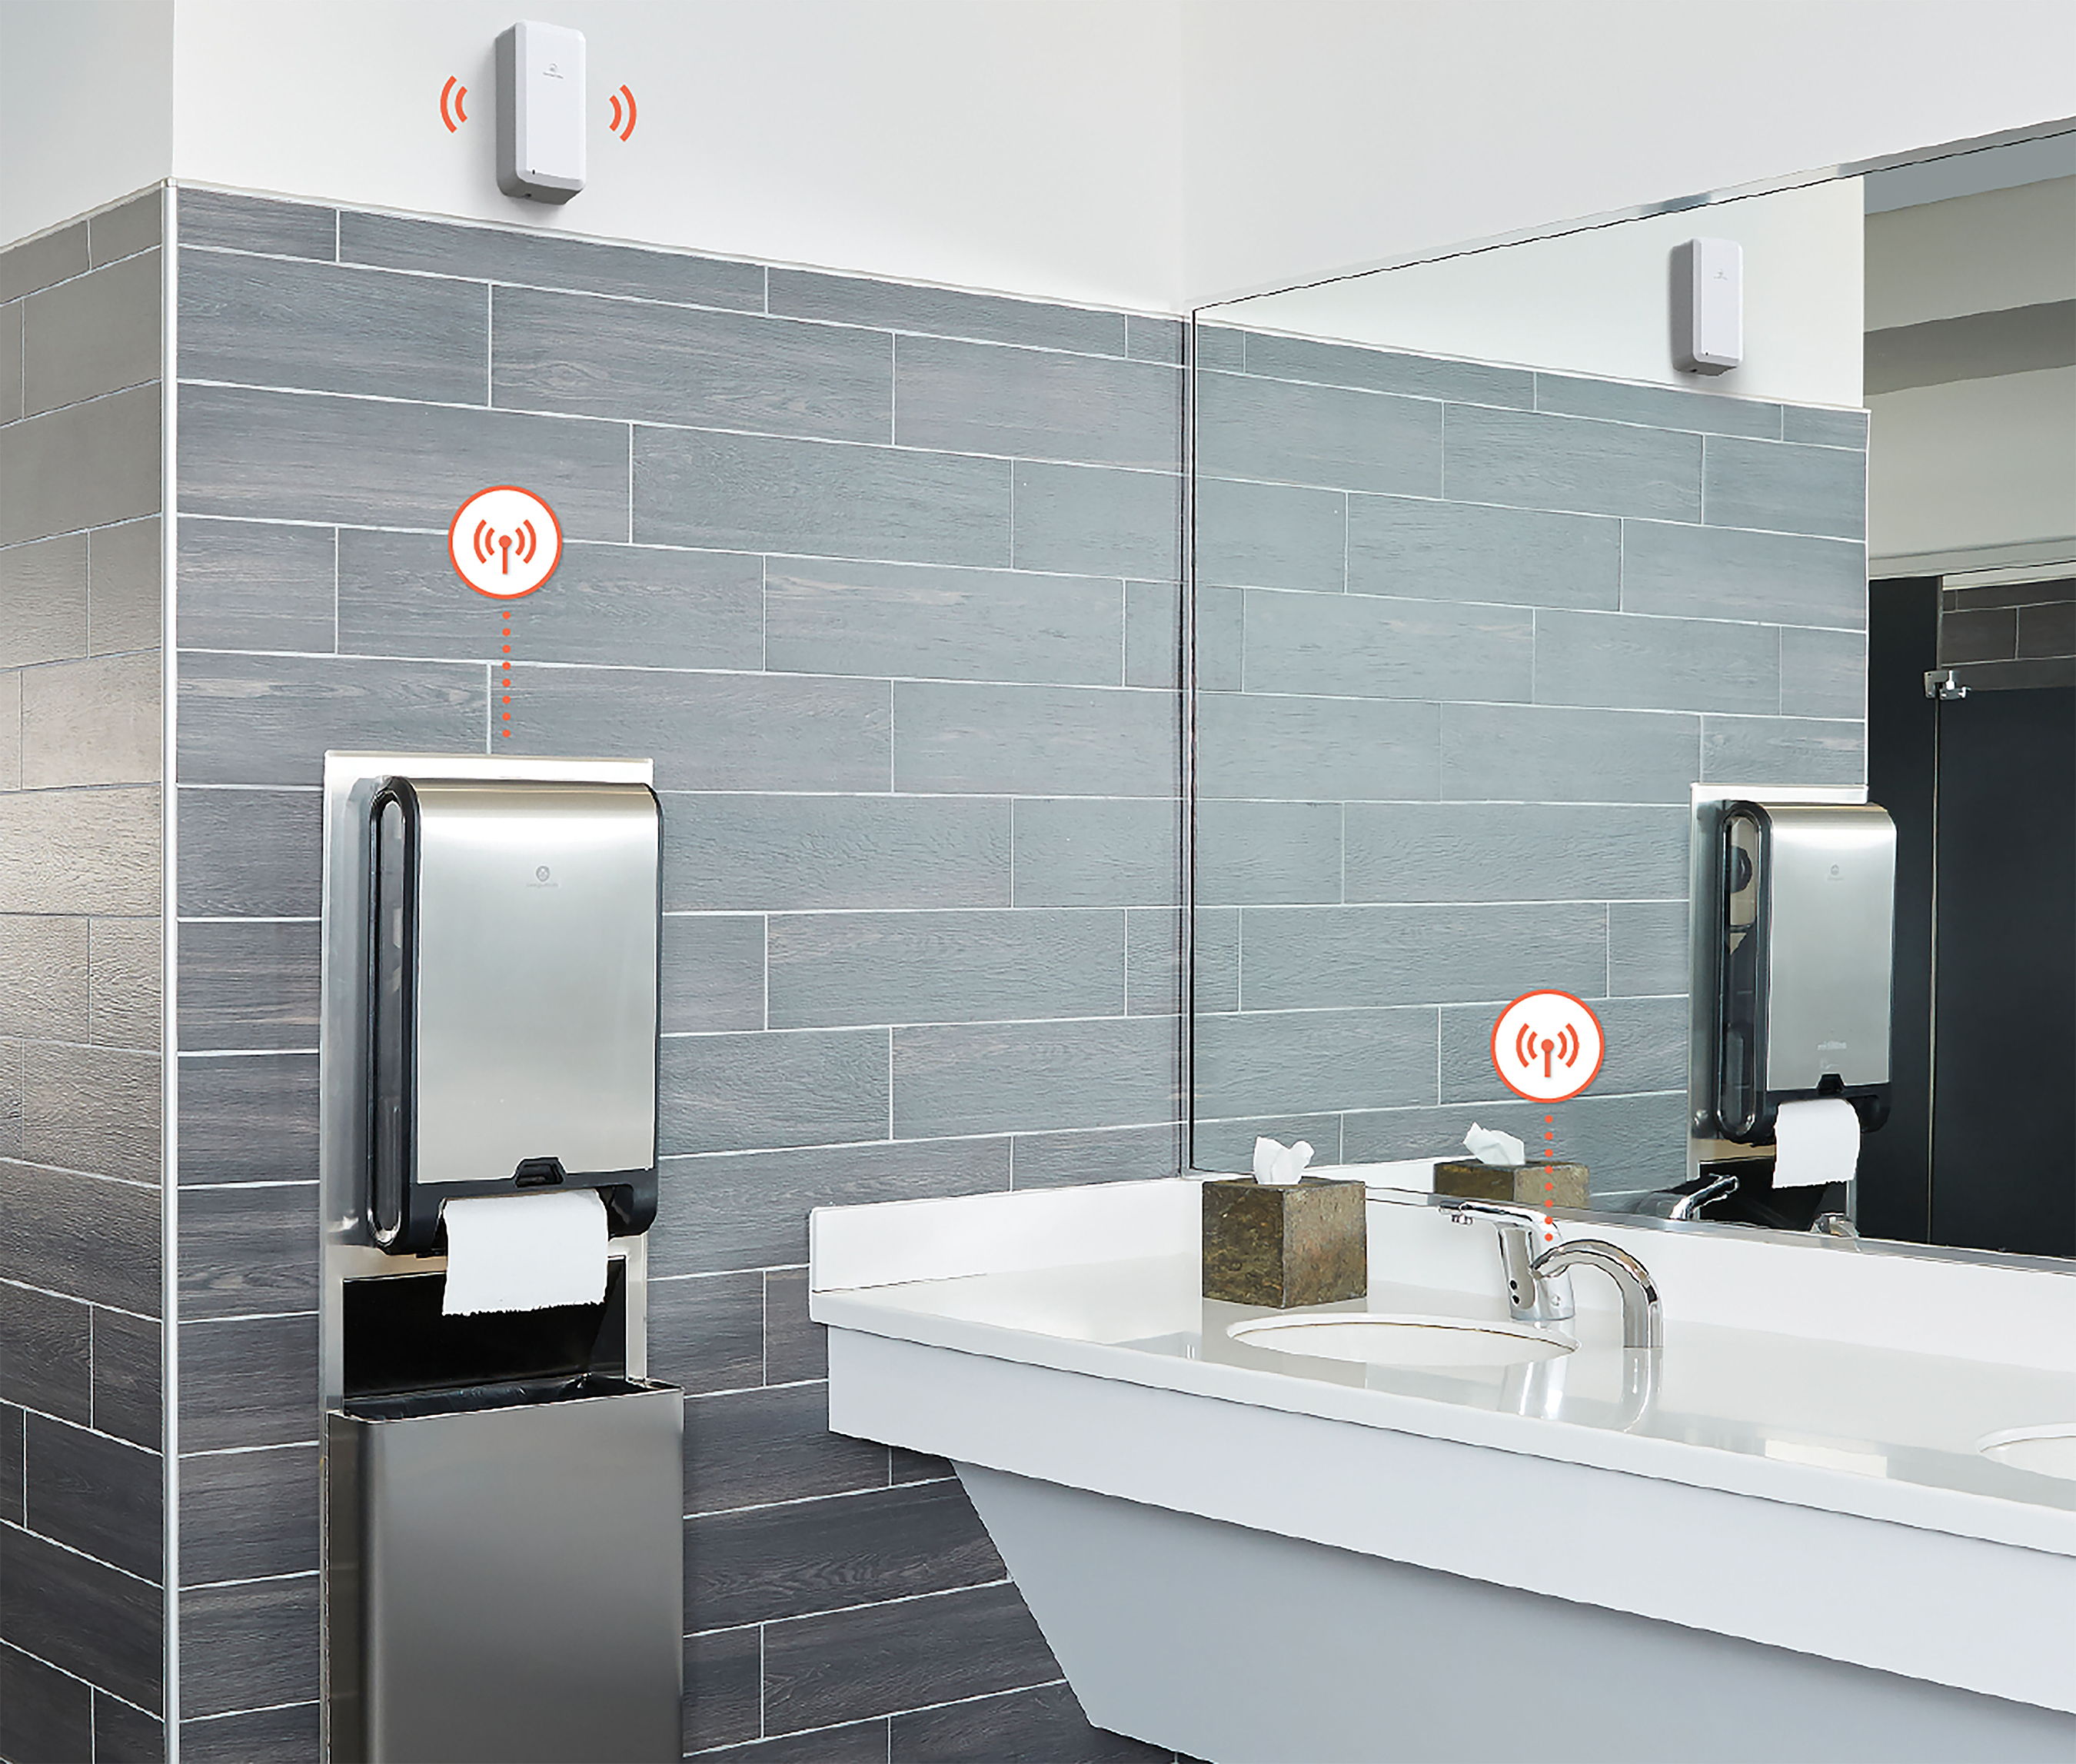 The KOLO™ Smart Monitoring System is a wireless communication platform that sends alerts from IoT-enabled restroom fixtures like paper towel and tissue dispensers to custodians on a mobile device.